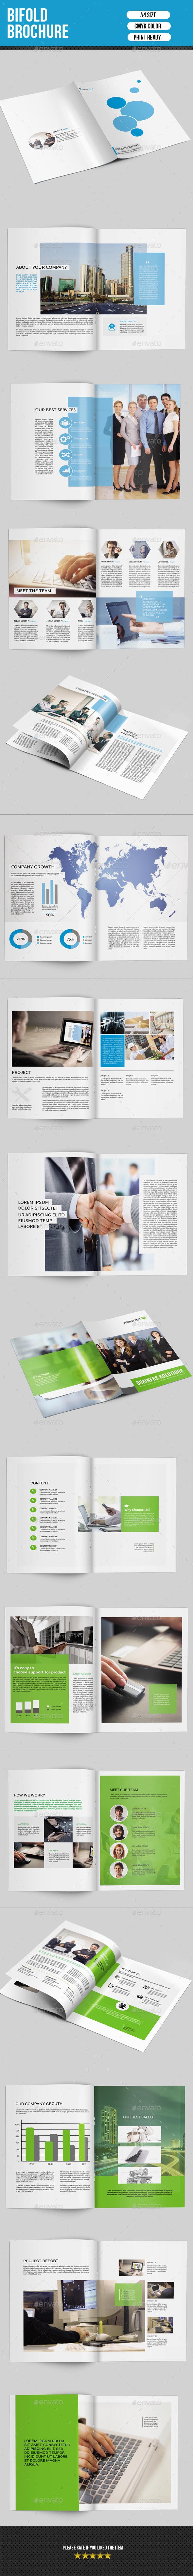 GraphicRiver Corporate Bifold Brochure Bundle-V06 9997365